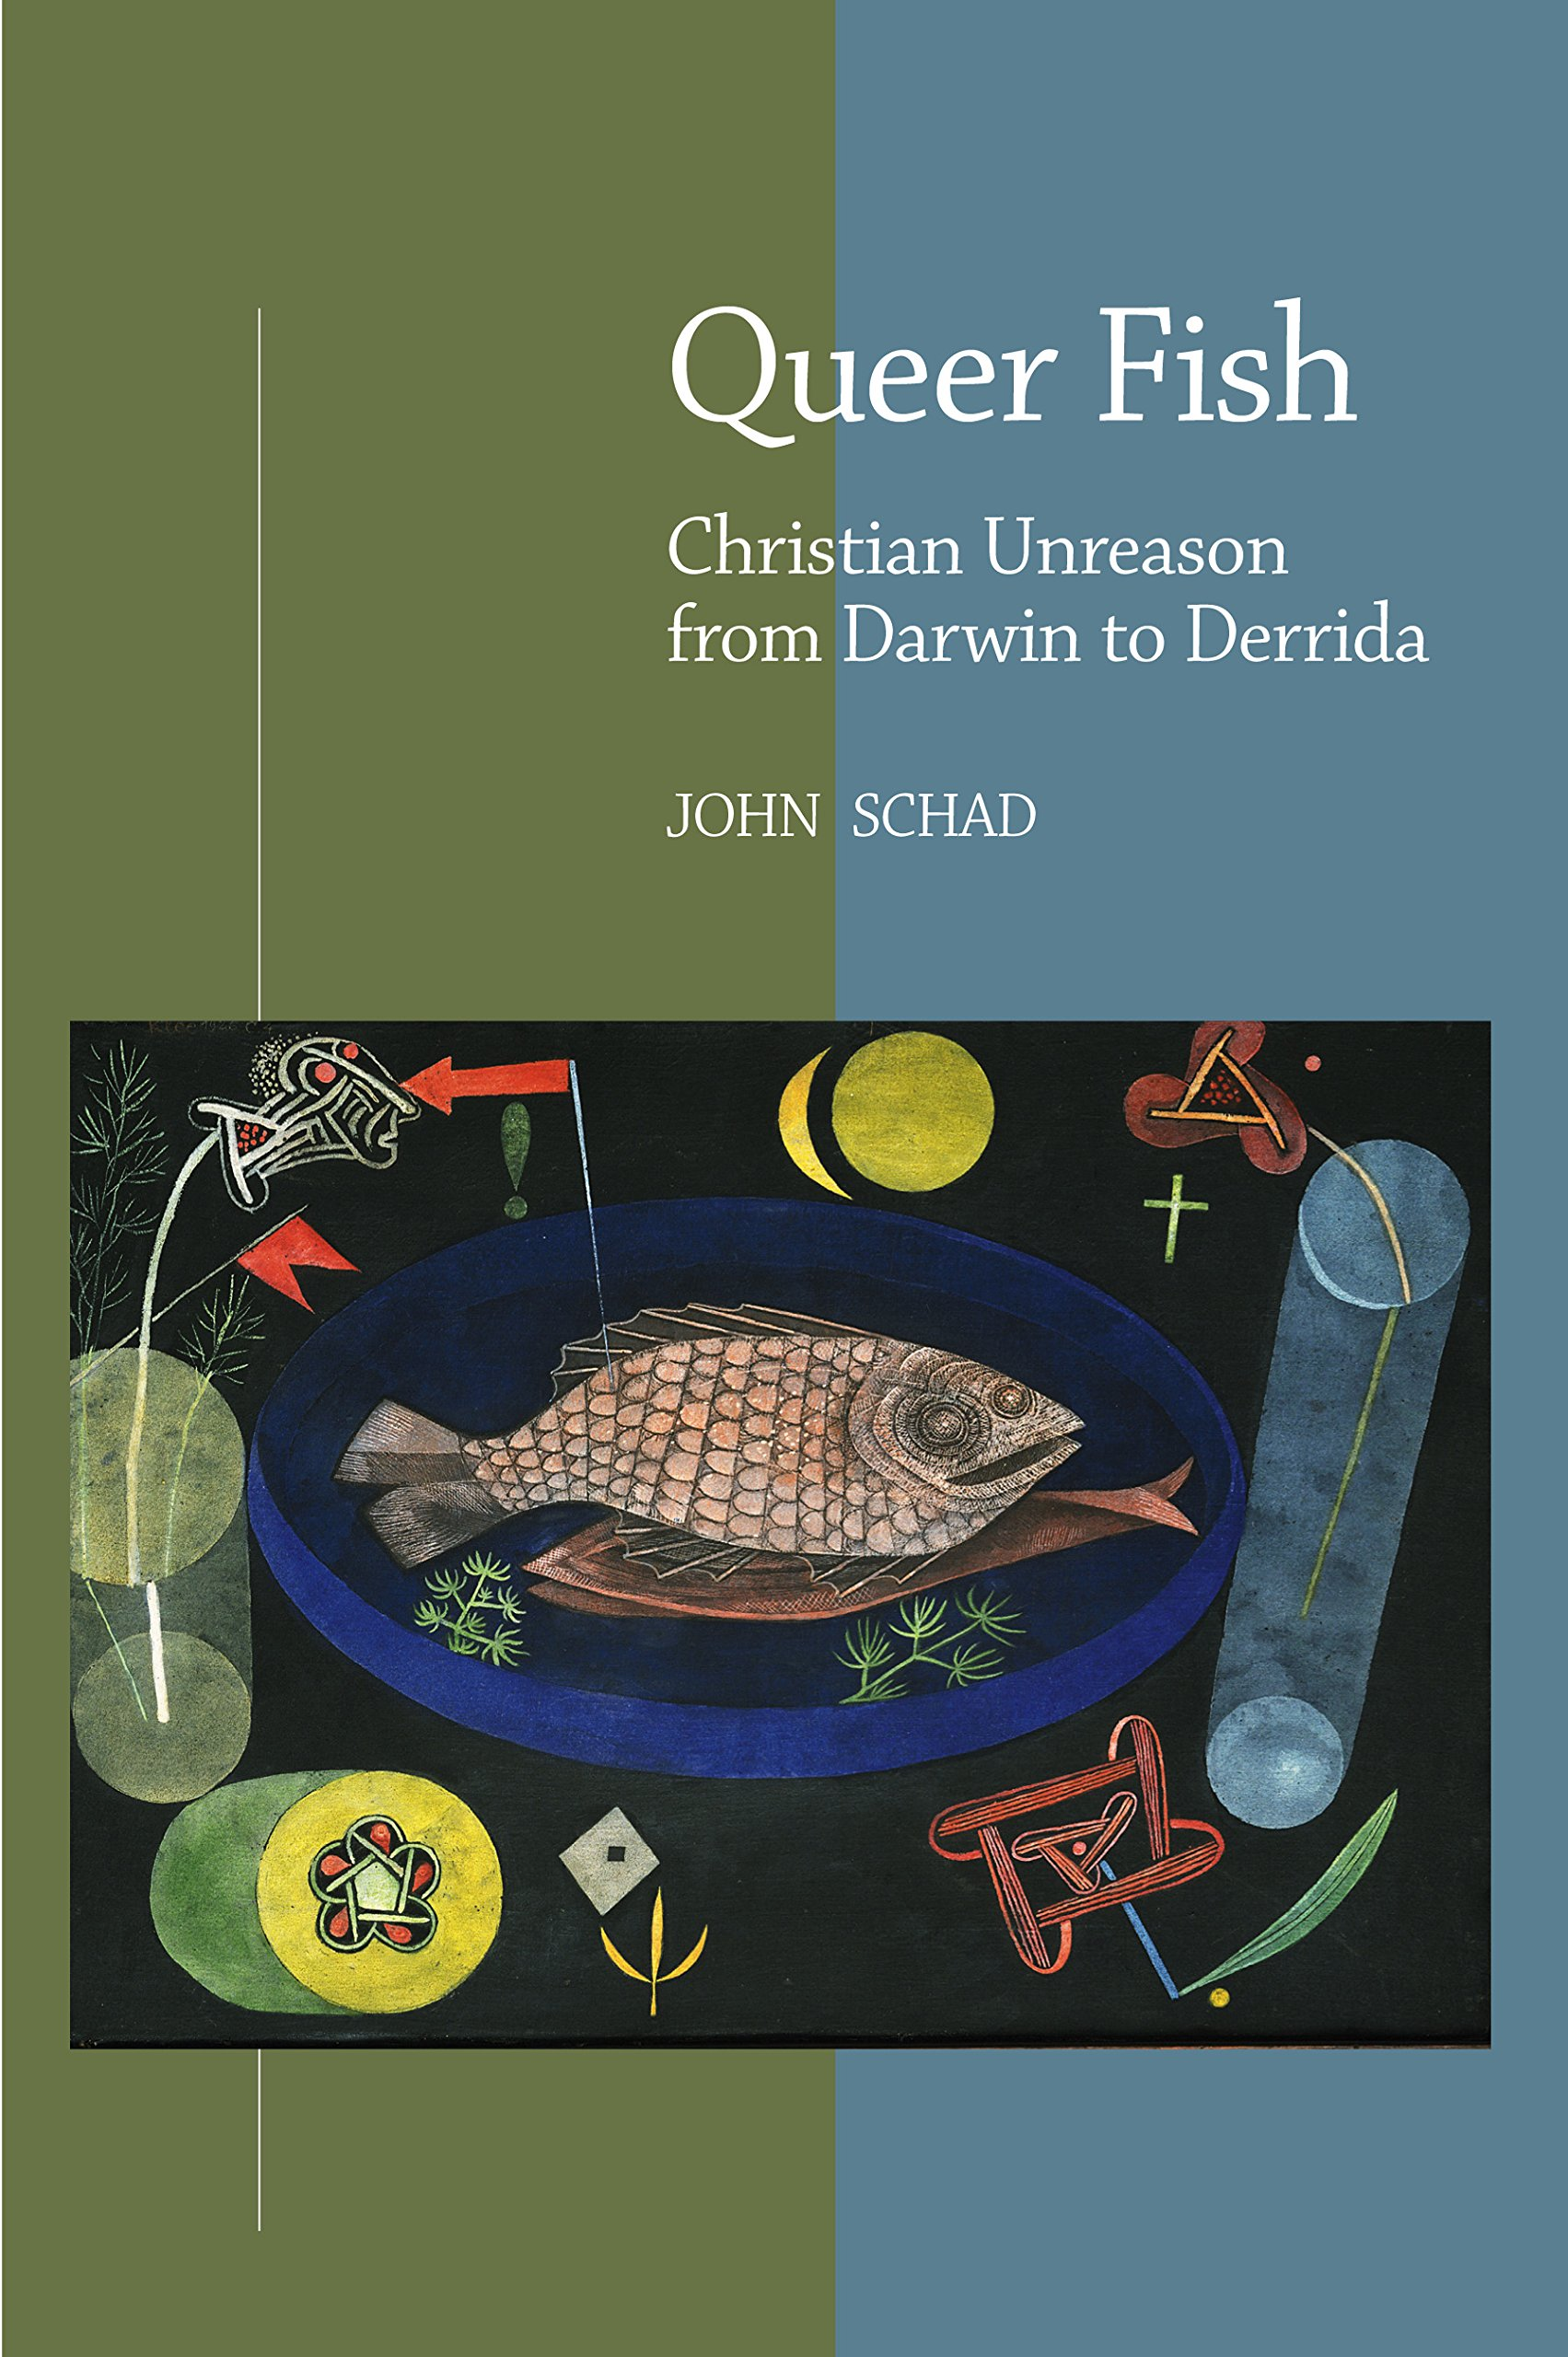 Queer Fish: Christian Unreason from Darwin to Derrida PDF